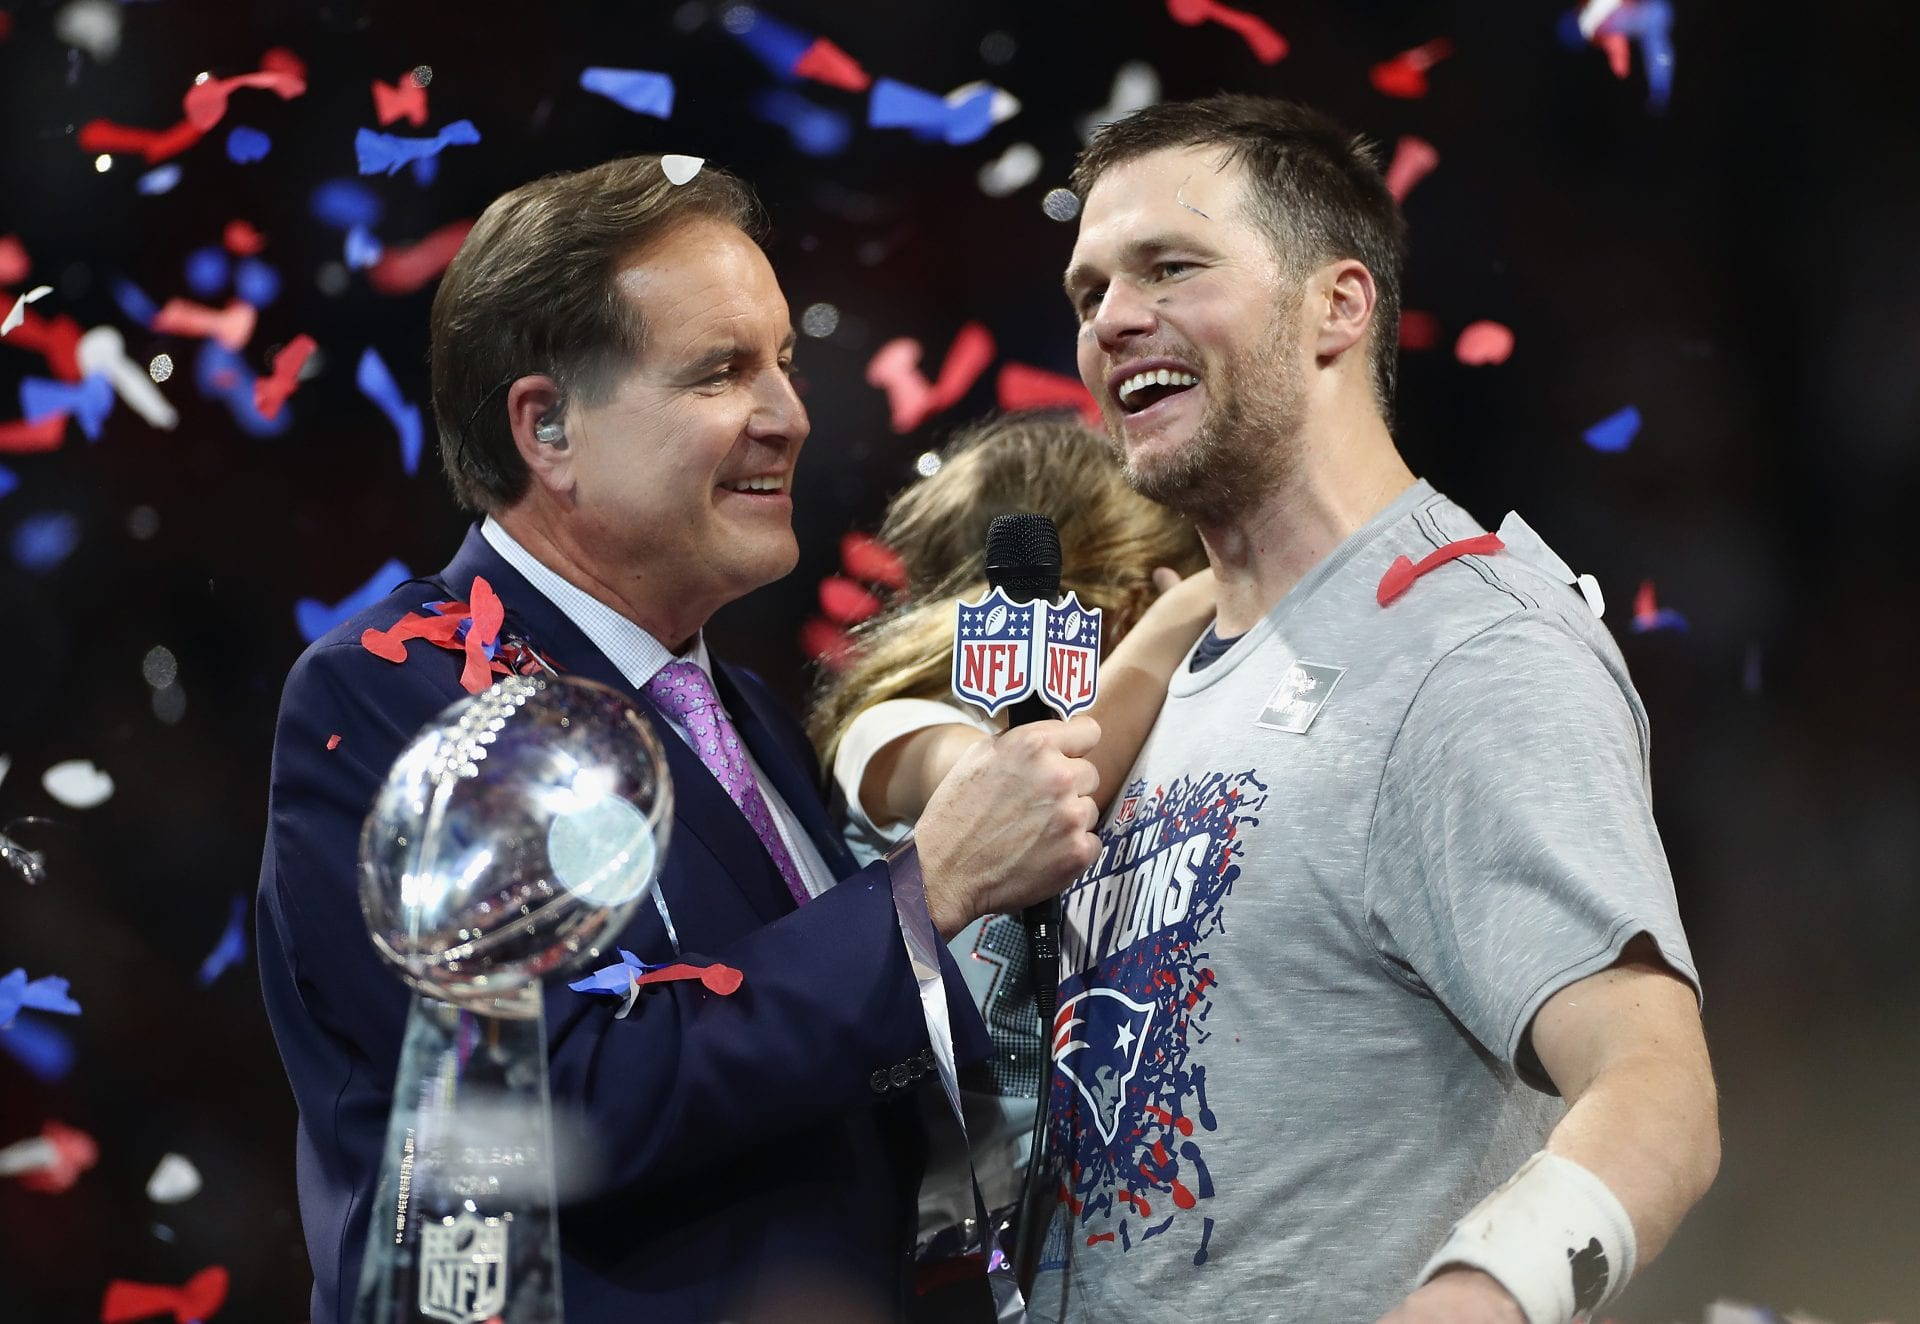 Tom Brady, Super Bowl LIII, New England Patriots